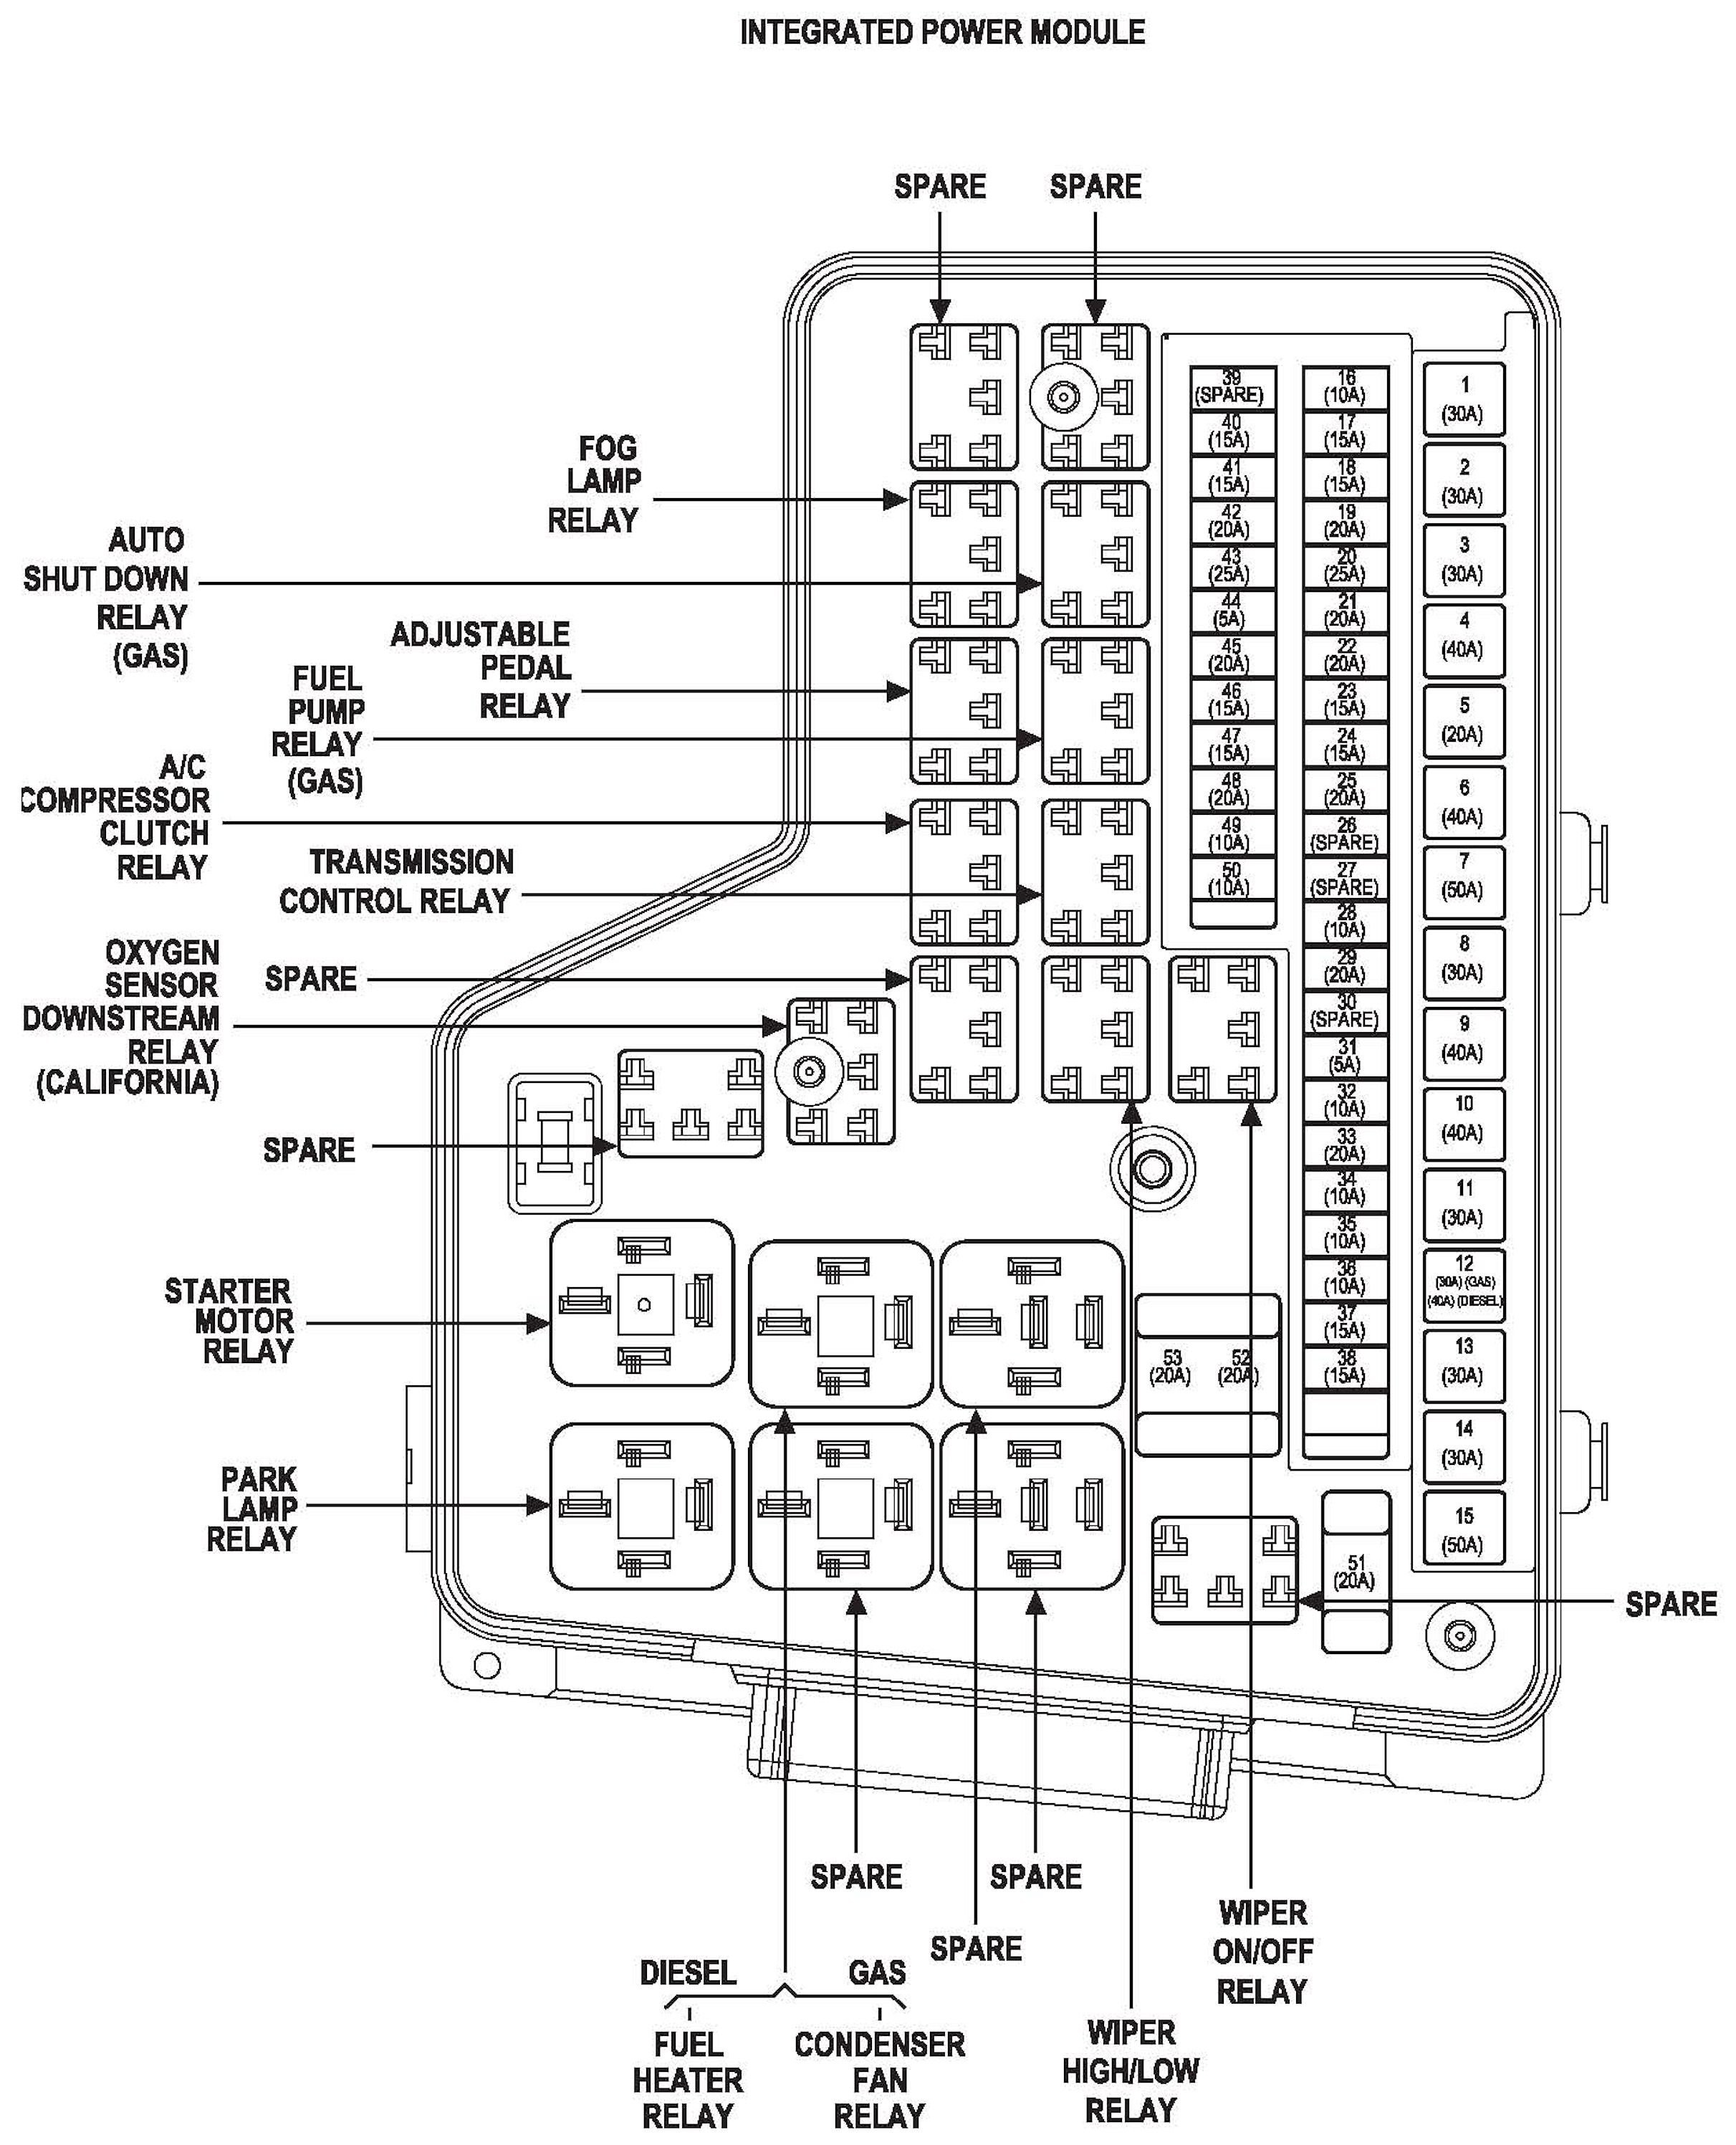 2006 57 ram 1500 fuse box diagram dodge wiring diagrams schematic 1996 dodge ram 1500 fuse box diagram 2006 57 ram 1500 fuse box diagram dodge 5 xcd capecoral 2006 dodge ram 1500 hemi 2006 57 ram 1500 fuse box diagram dodge